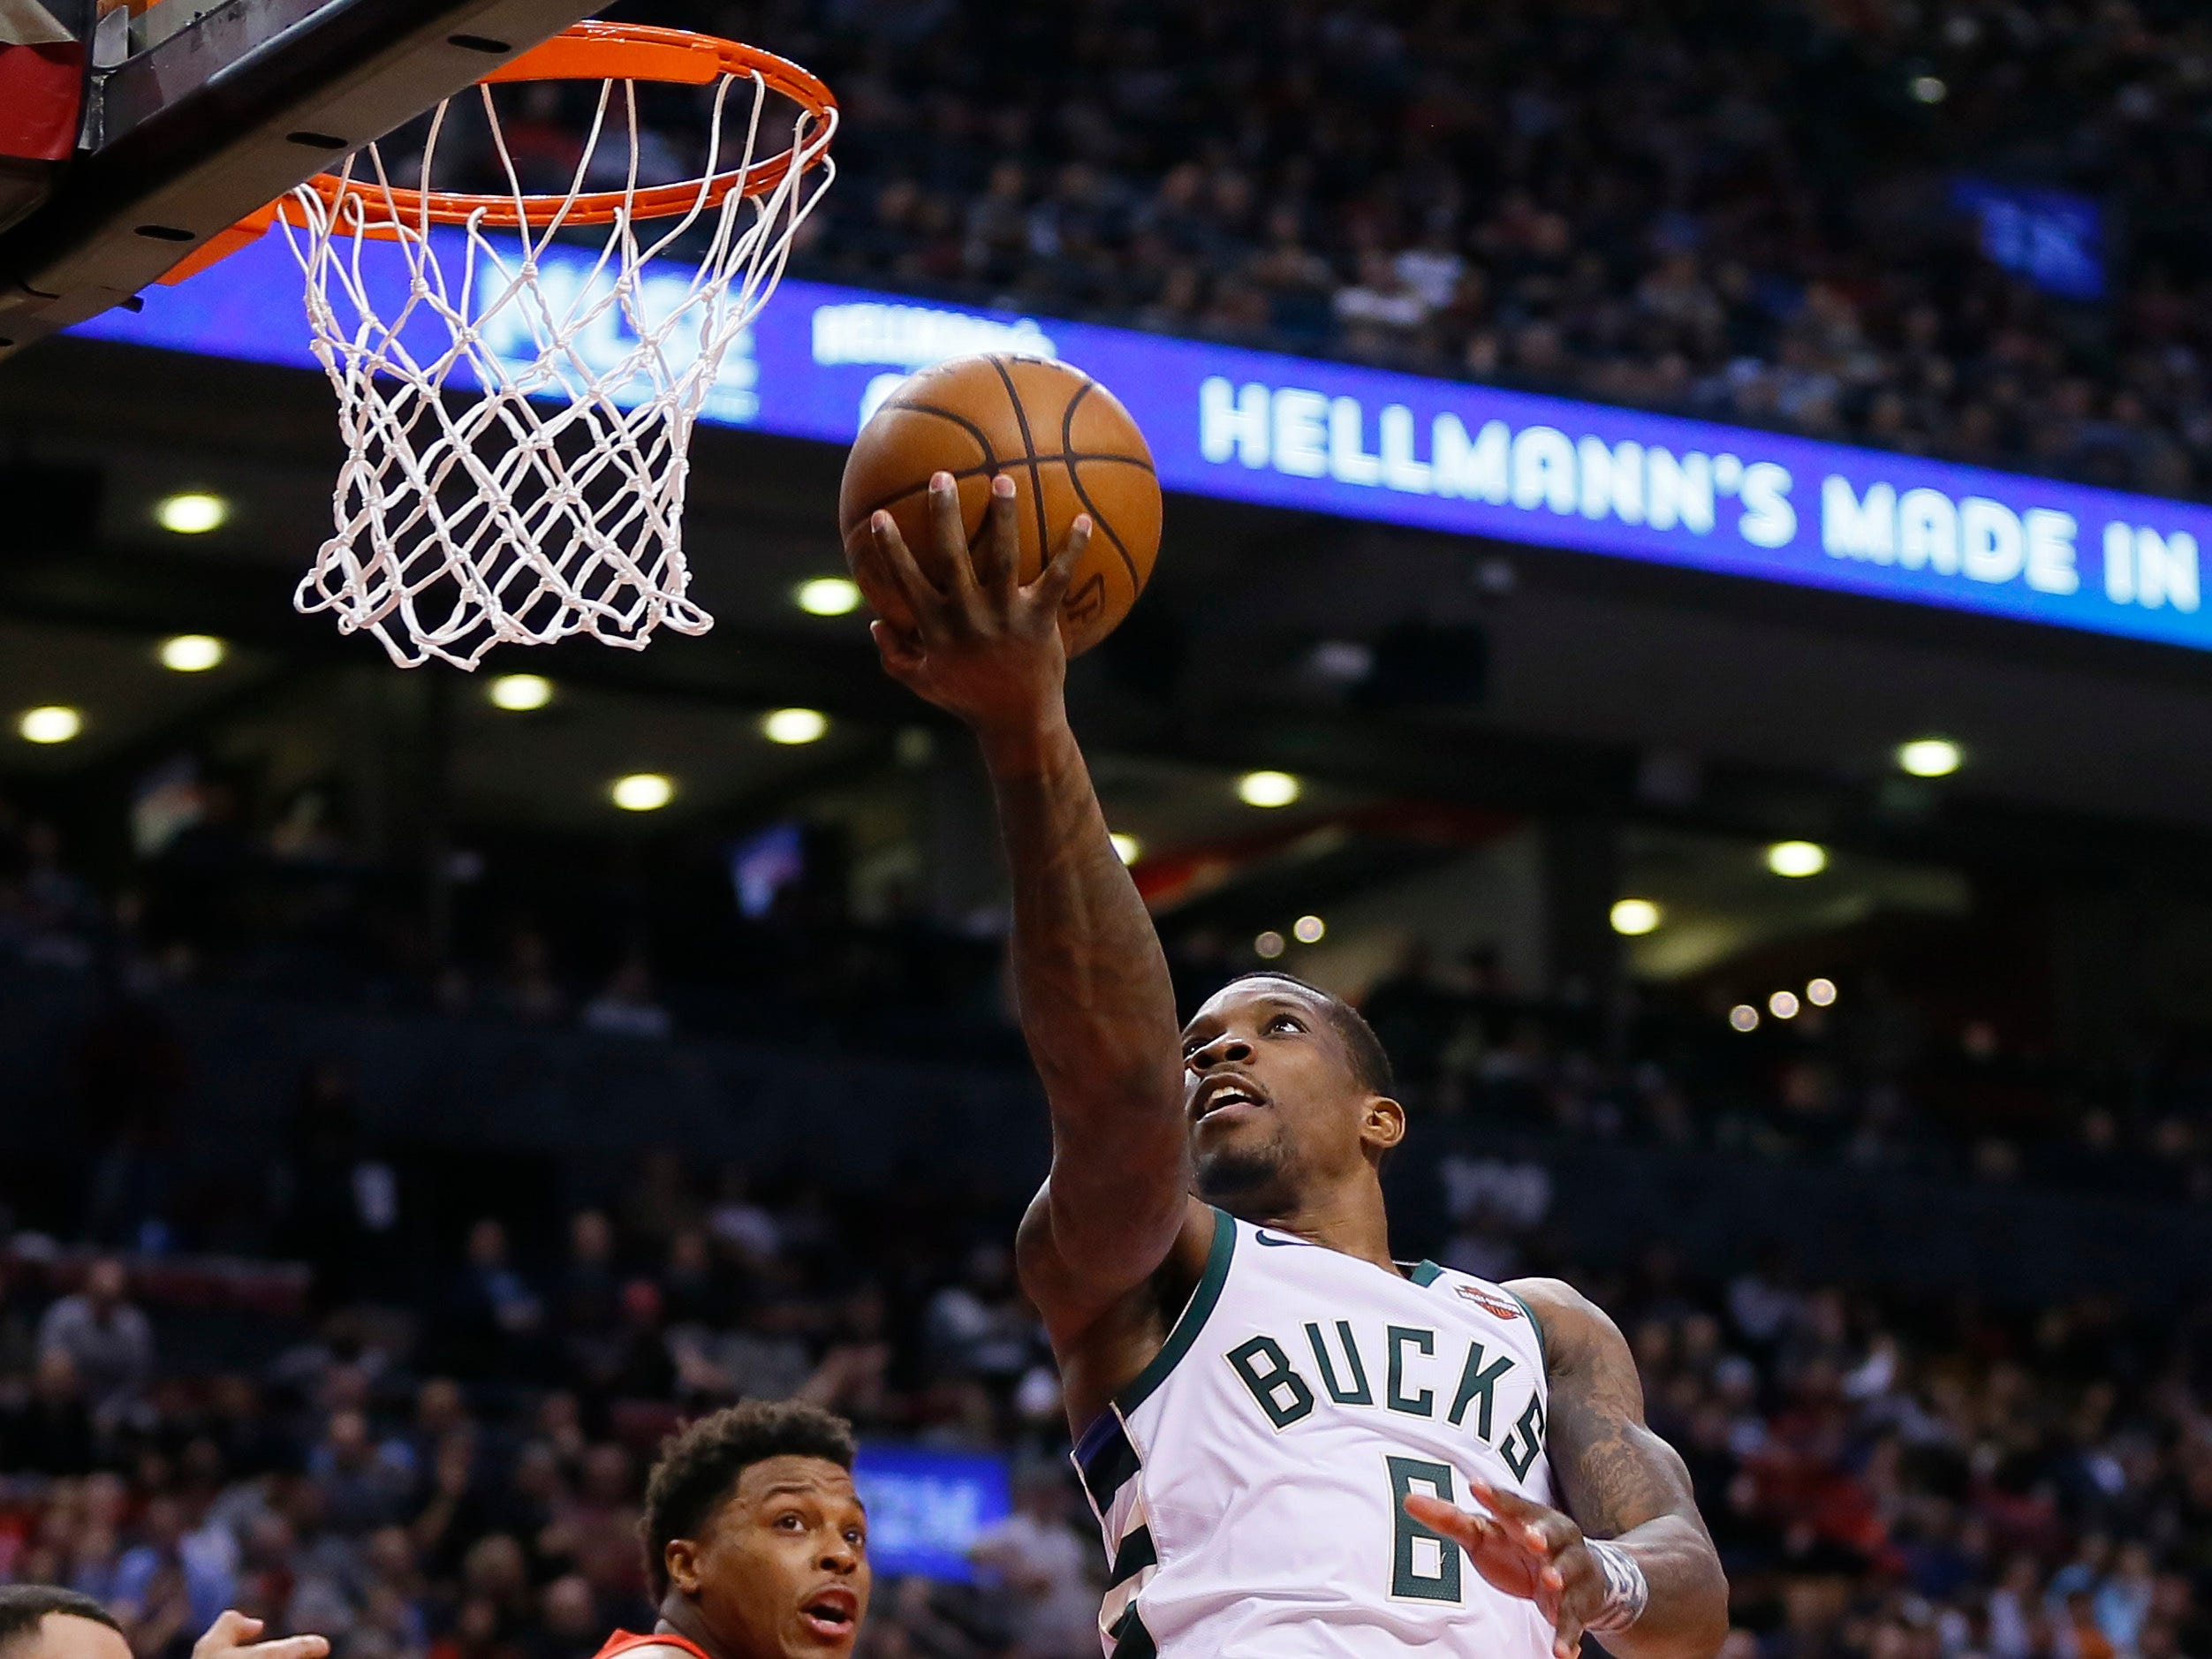 Bucks guard Eric Bledsoe goes up for a layup after getting past Raptors guard Kyle Lowry during the second half Thursday.